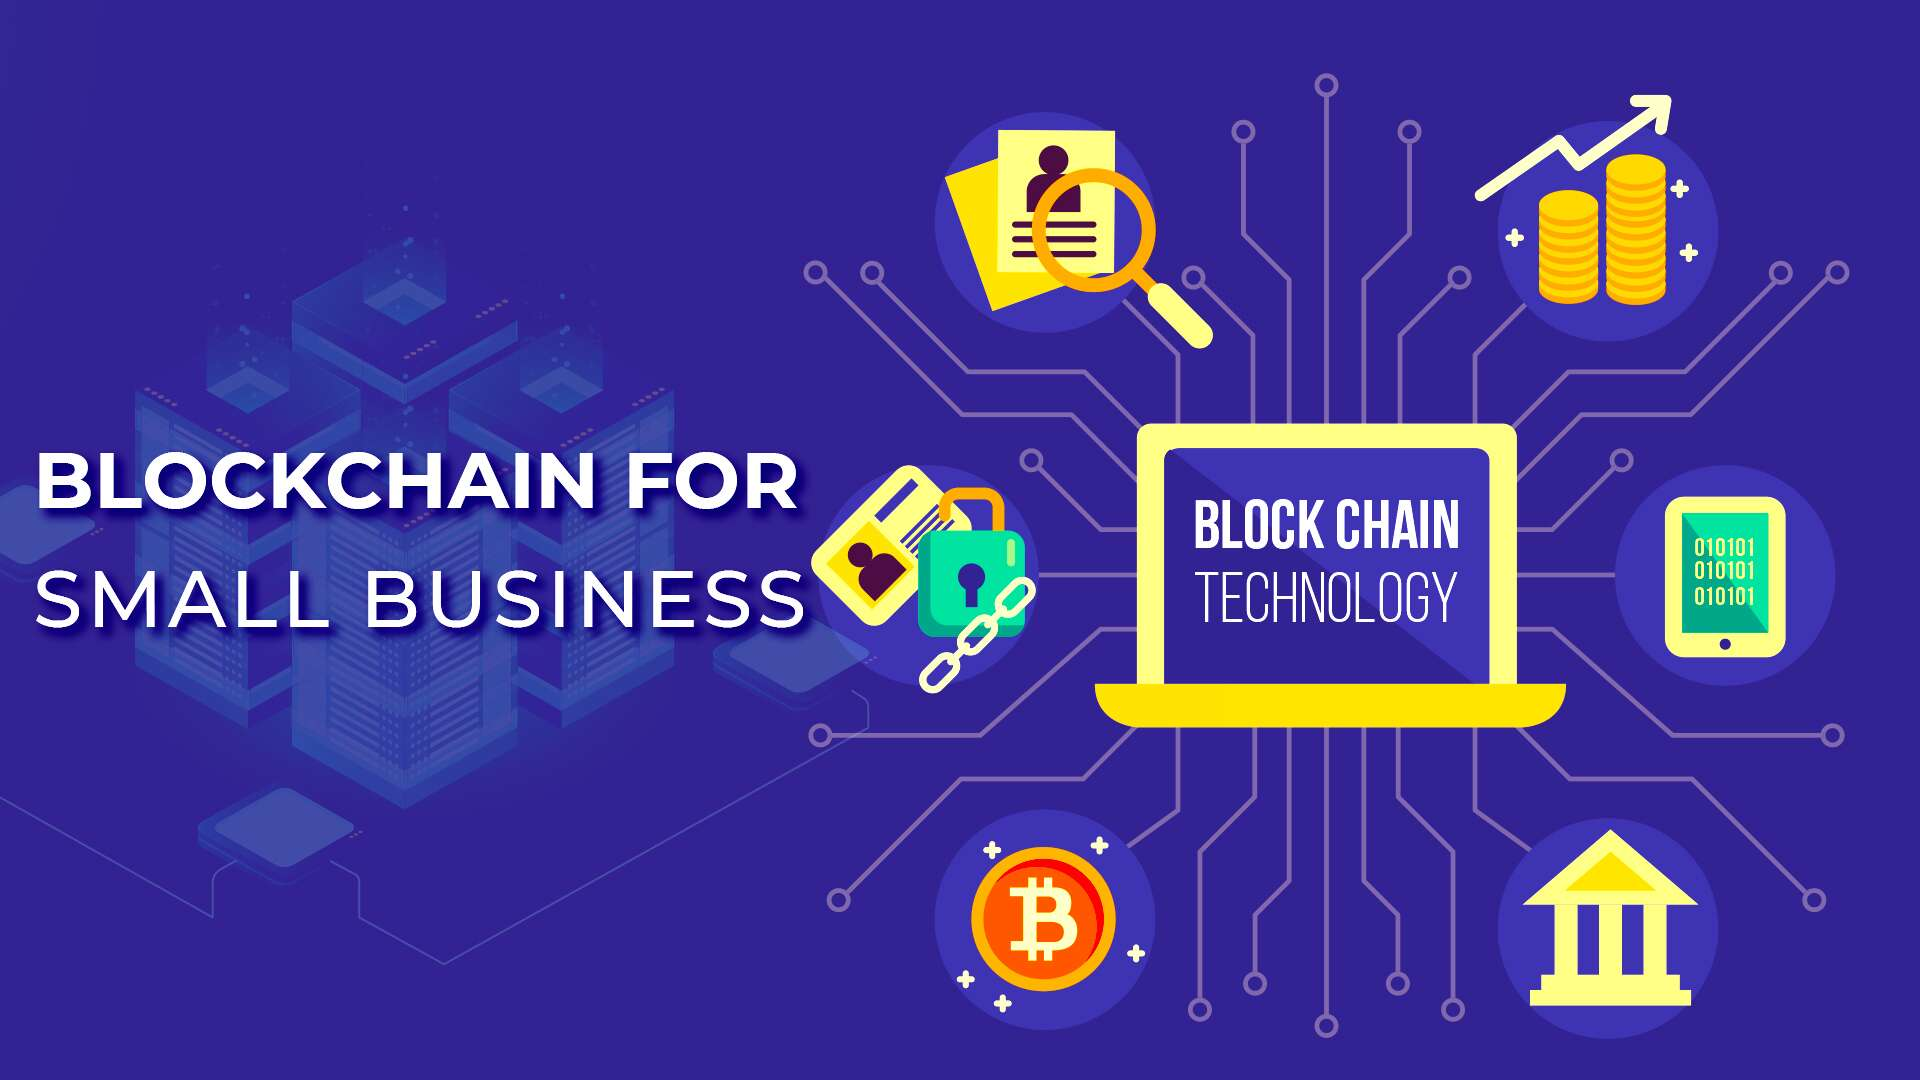 How Small Business uses Blockchain technology?